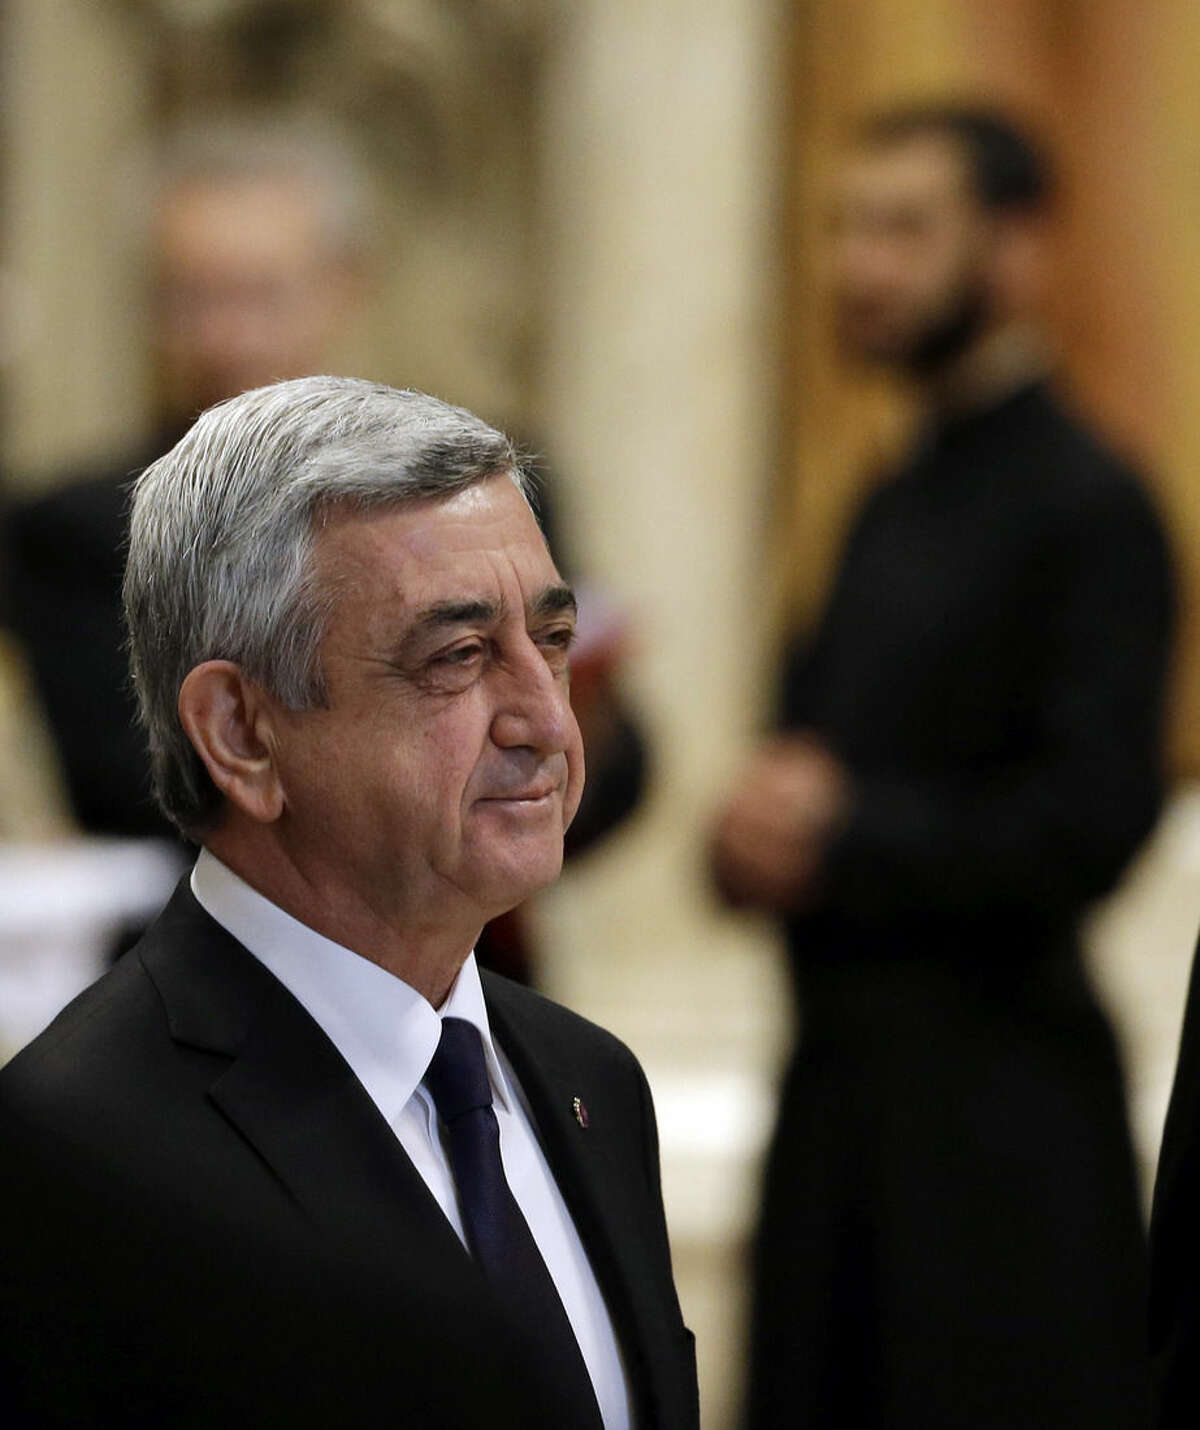 Armenian President Serzh Sargsyan arrives to attend an Armenian-Rite Mass celebrated by Pope Francis on the occasion of the commemoration of the 100th anniversary of the Armenian Genocide, in St. Peter's Basilica, at the Vatican, Sunday, April 12, 2015. Historians estimate that up to 1.5 million Armenians were killed by Ottoman Turks around the time of World War I, an event widely viewed by genocide scholars as the first genocide of the 20th century. Turkey however denies that the deaths constituted genocide, saying the toll has been inflated, and that those killed were victims of civil war and unrest. (AP Photo/Gregorio Borgia)